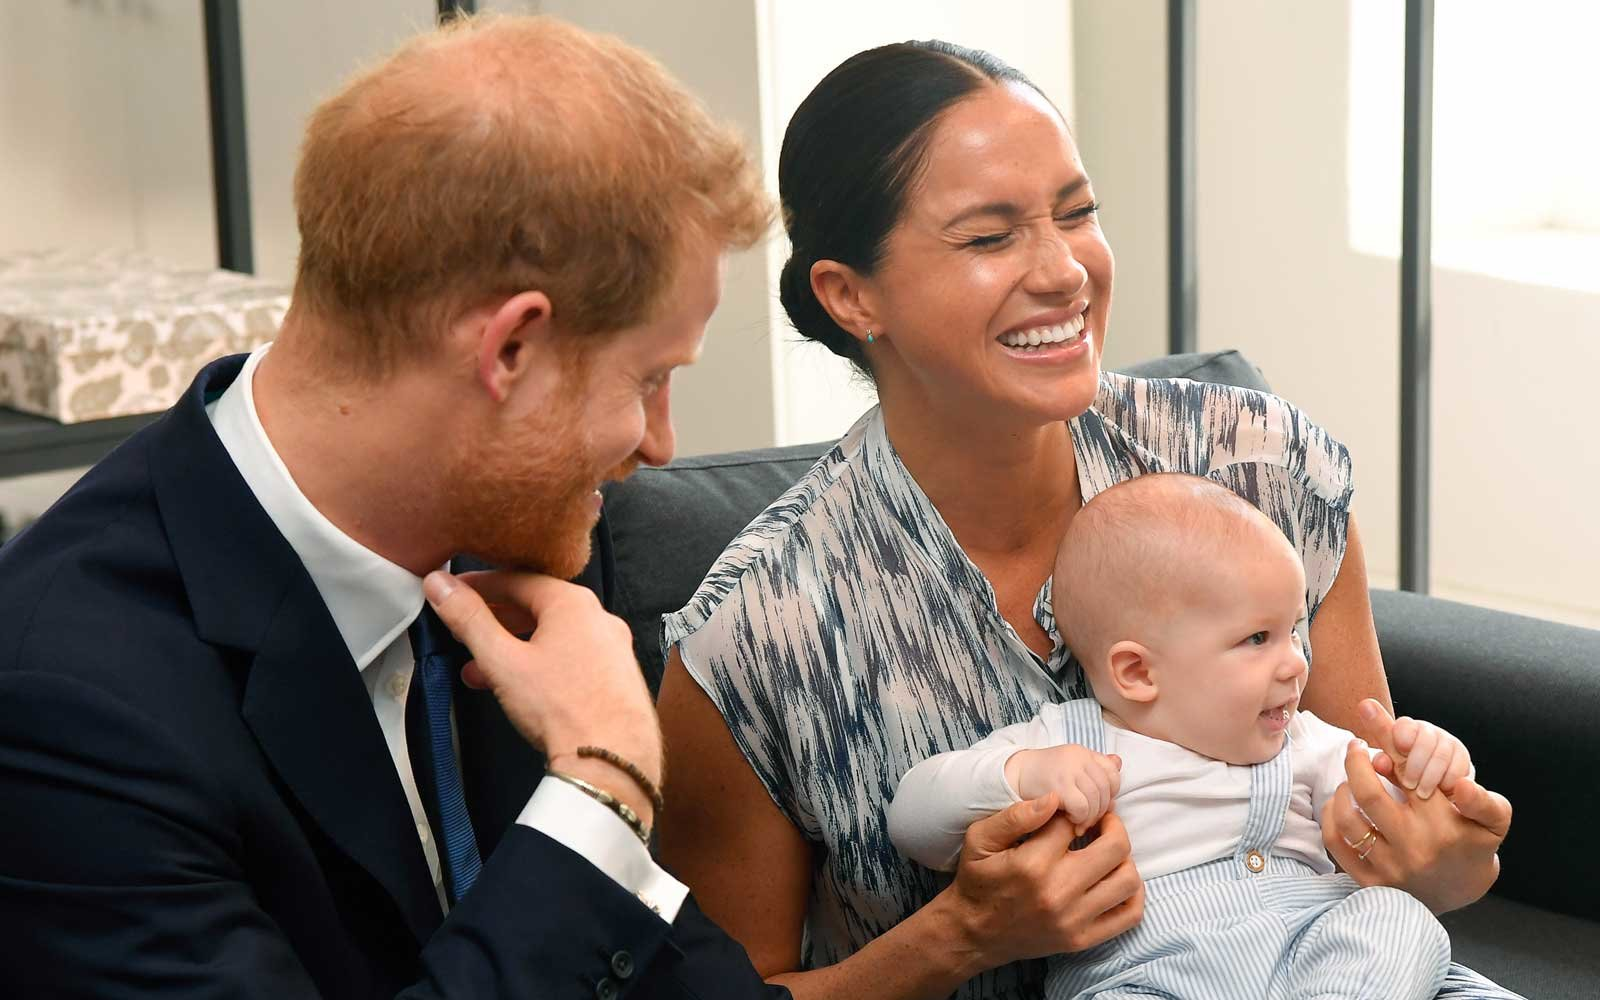 Sussex Royal with baby Archie